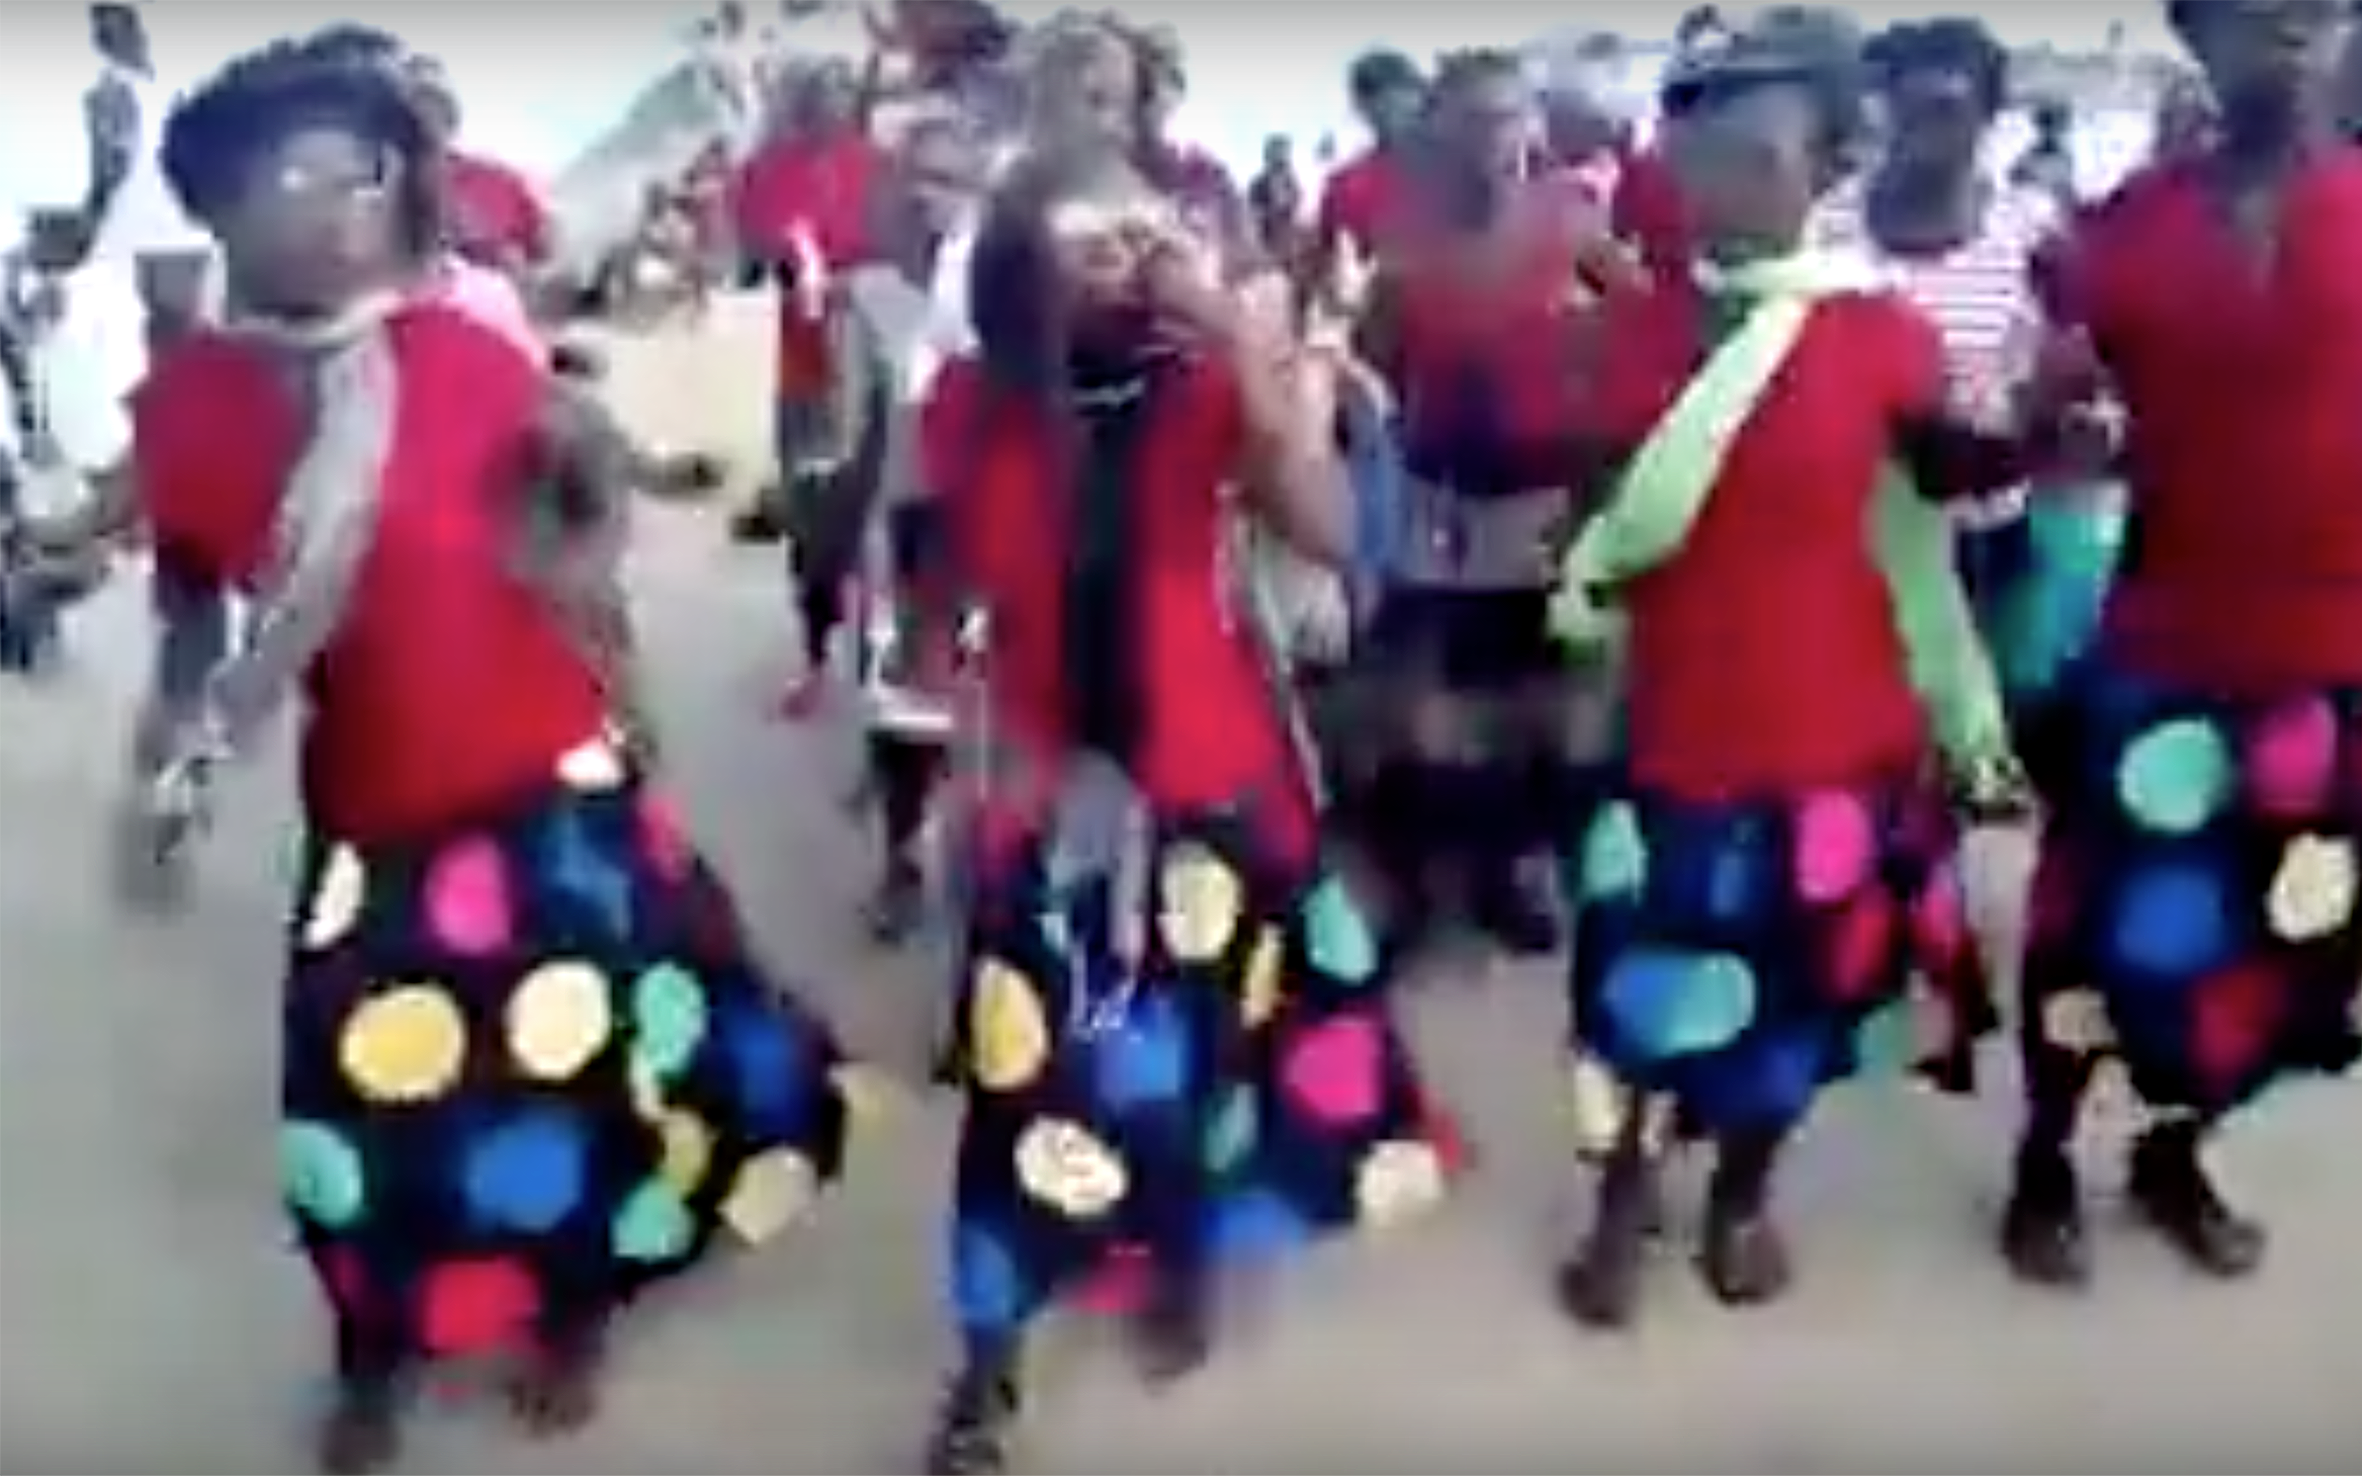 163.chilimika / Malawi - chilimika is a dance quite famous in Nkhata-Bay District in Malawi. It is known to instil the spirit of smartness. Chilimika, meaning year, is performed by the young Tonga women in the district. It is, actually, an imitation of malipenga dance which is mostly performed by men.Dancers' steps, in response to the drumbeat, seem effortless and smart such that the dance fits well with decent dressing. A handkerchief in their hands—possibly, to dust their shoes of dirt, or wipe sweat off their faces—exposes their quest for smartness. At each New Year's Day, young men and women congregate at the village arena, known as Boma, to entertain the village with chilimika.